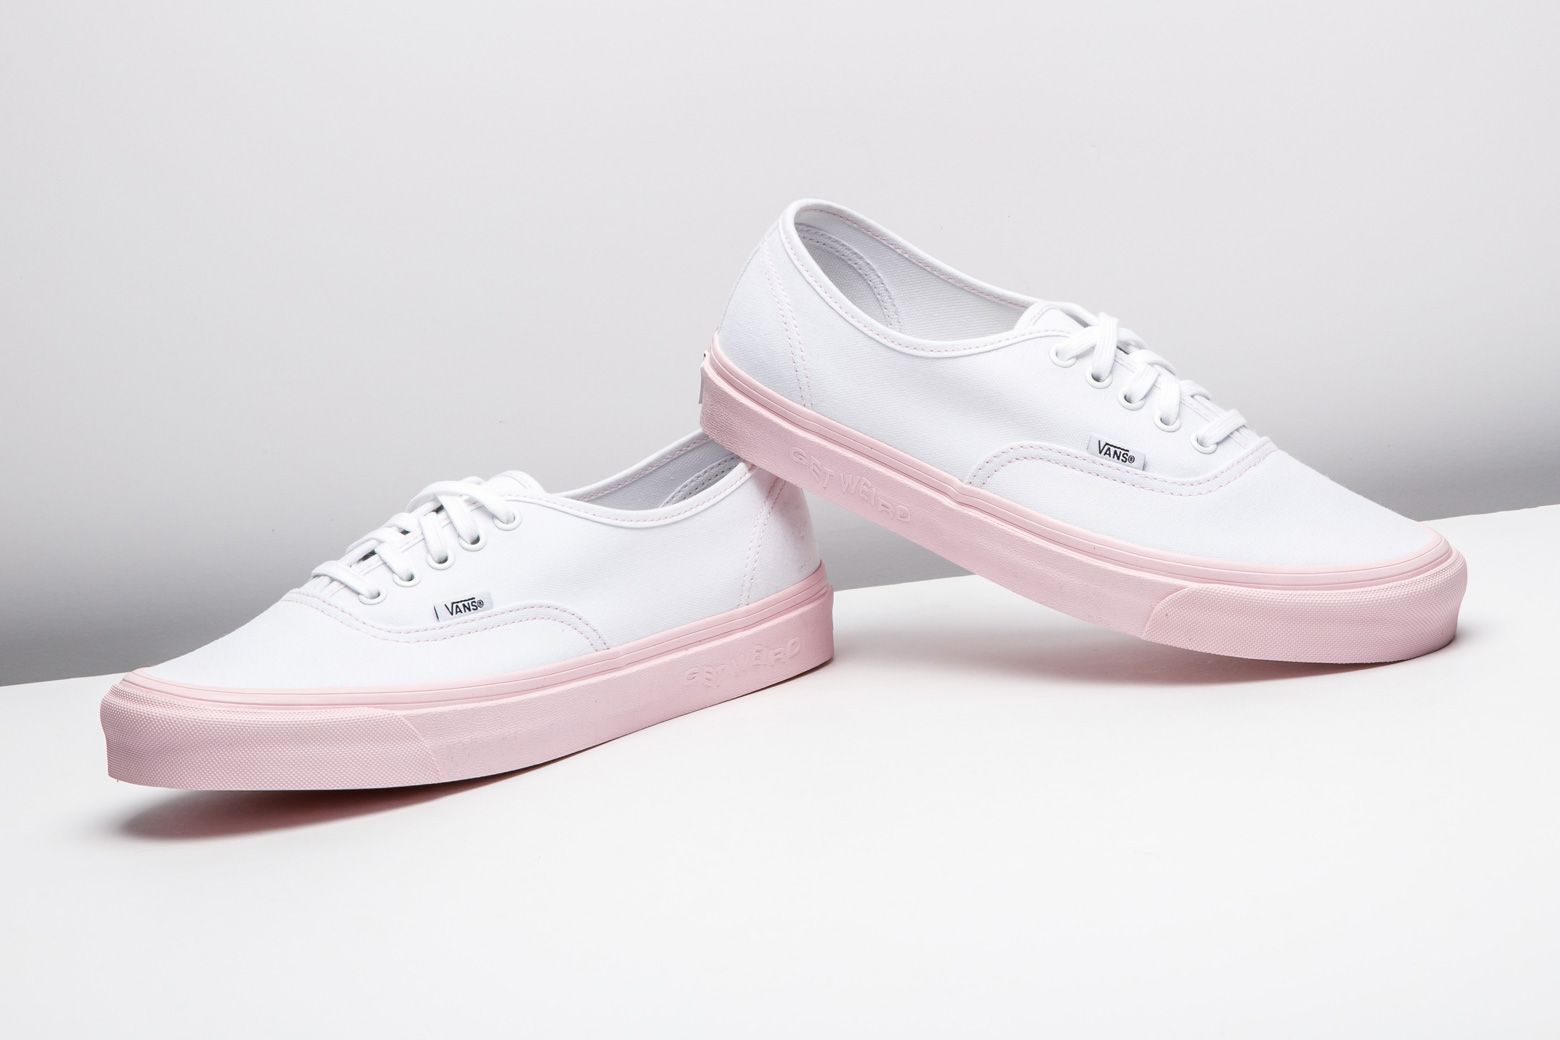 26c54b1ef46a A pastel pink sole gives the Anti Social Social Club x Vans Vault Authentic  a summery pop of color.